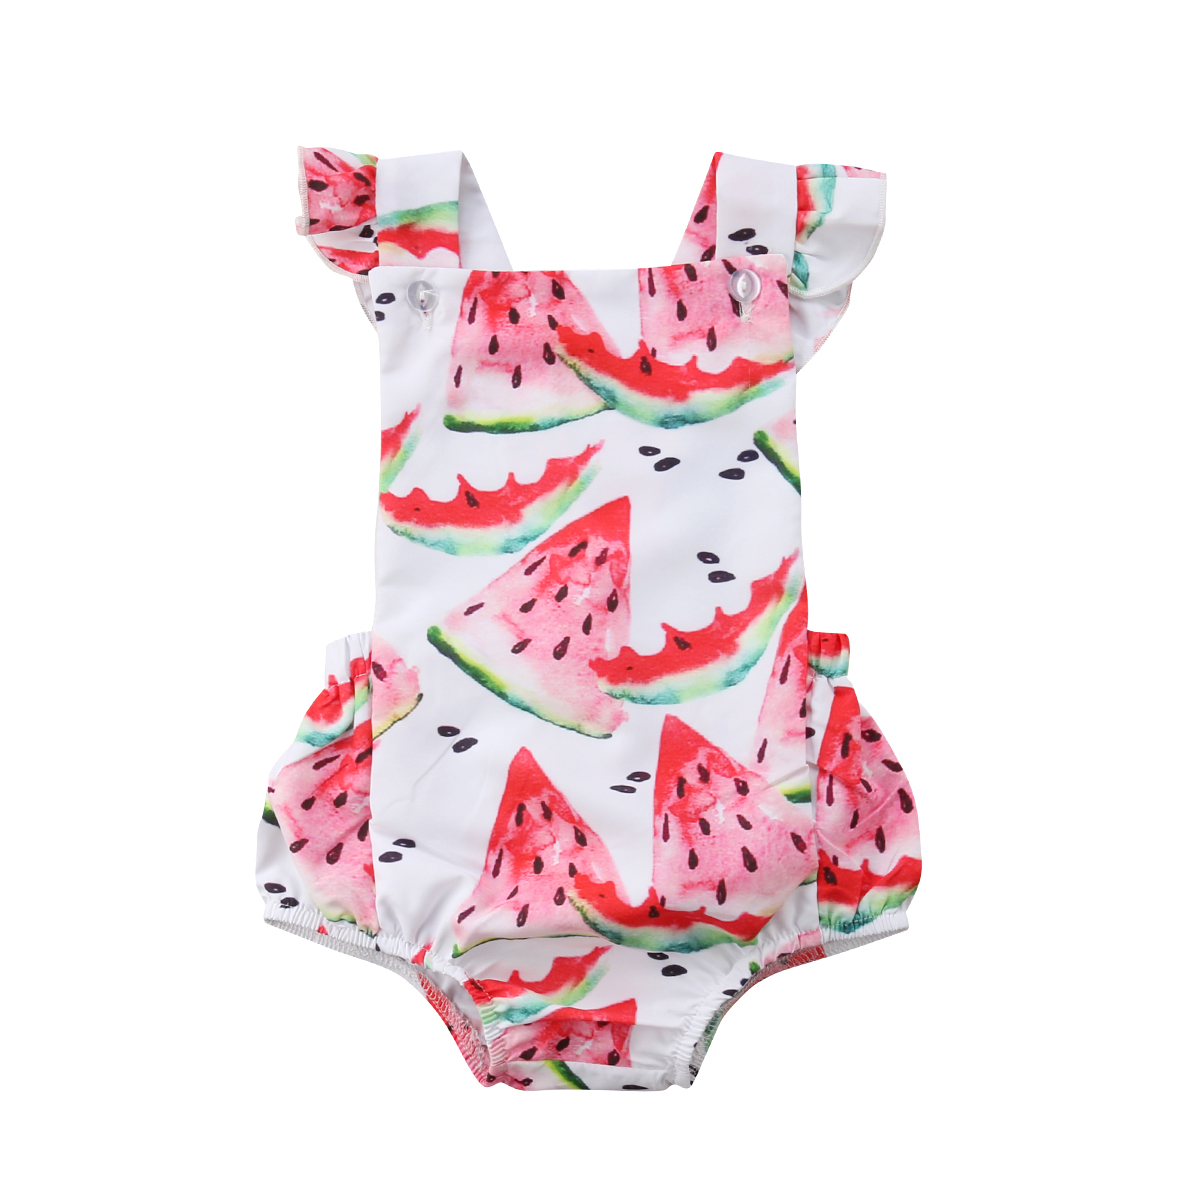 Cute Fruit Newborn Baby Girls Toddler   Rompers   Summer Watermelon Print Sleeveless Jumpsuit Playsuit Cotton Baby Girls Clothing